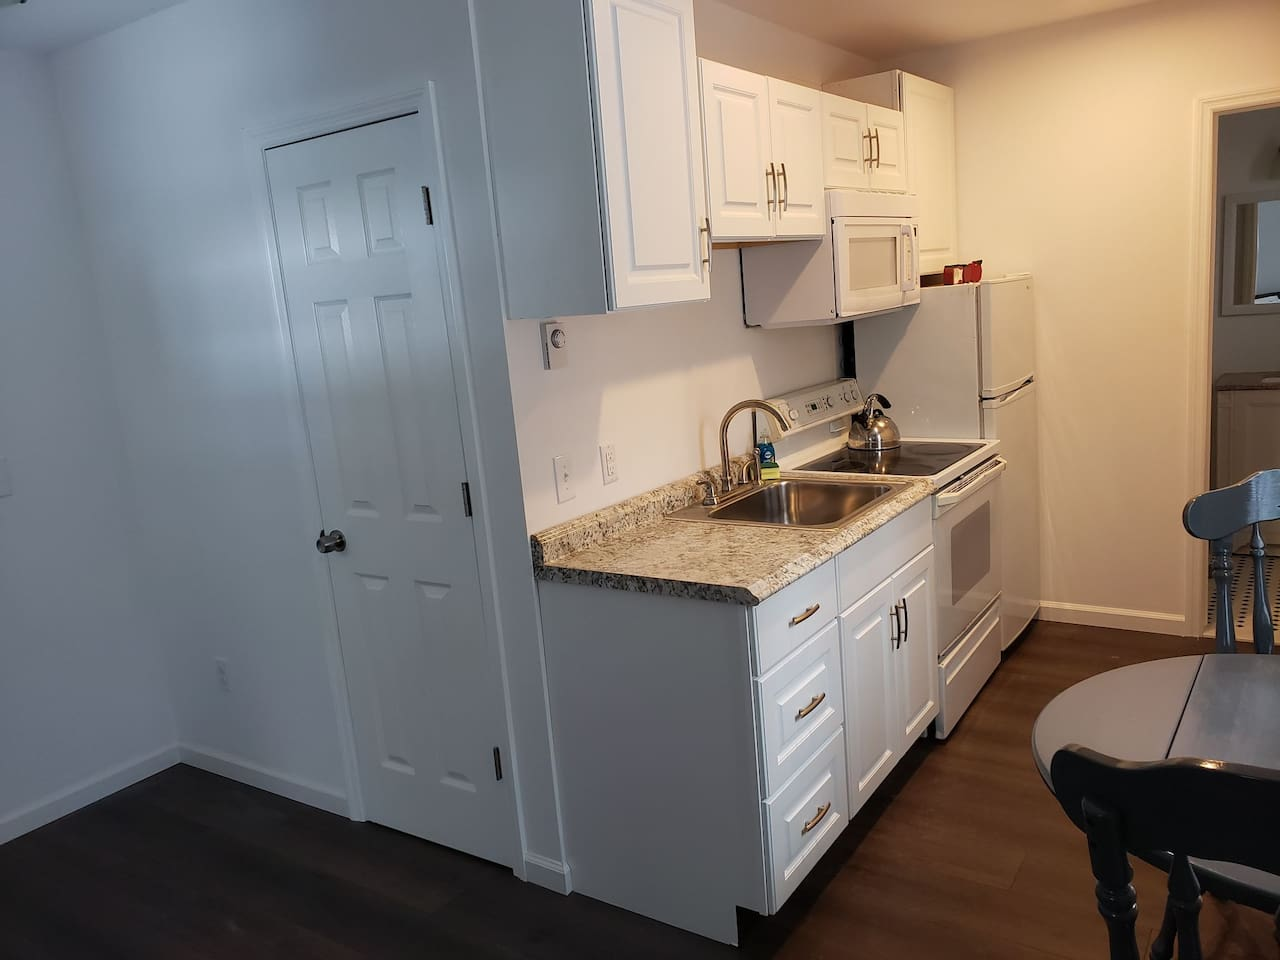 Full Kitchen with stove, oven and microwave.